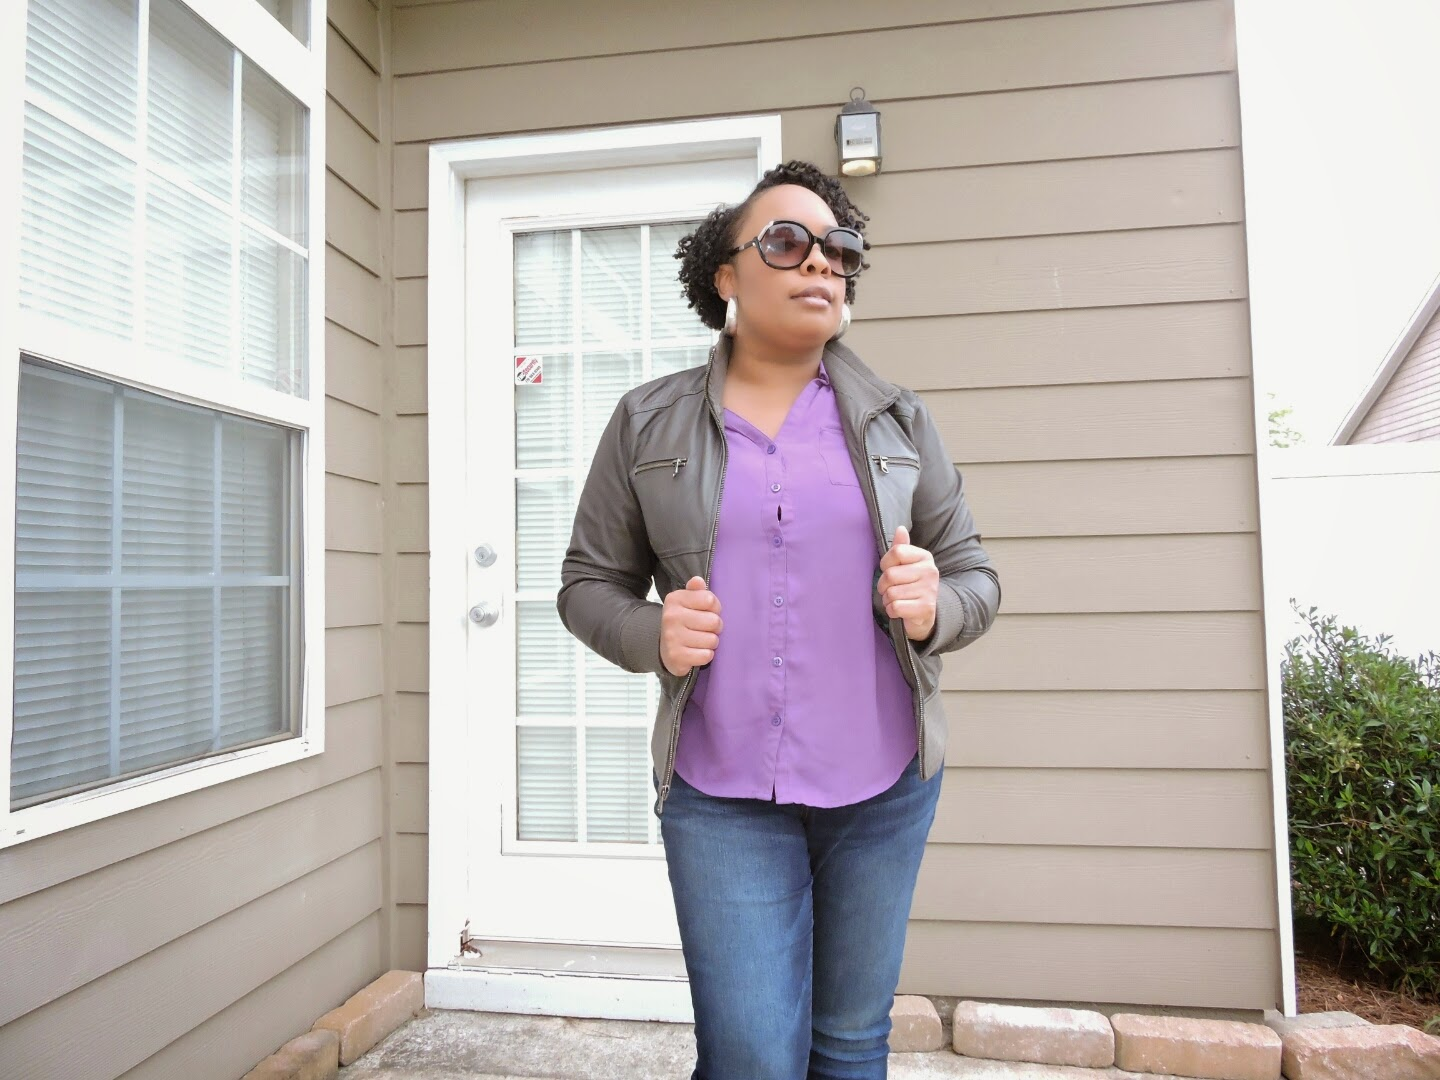 Wilsons Leather Jacket Review and Giveaway Ends 5/11  via www.productreviewmom.com